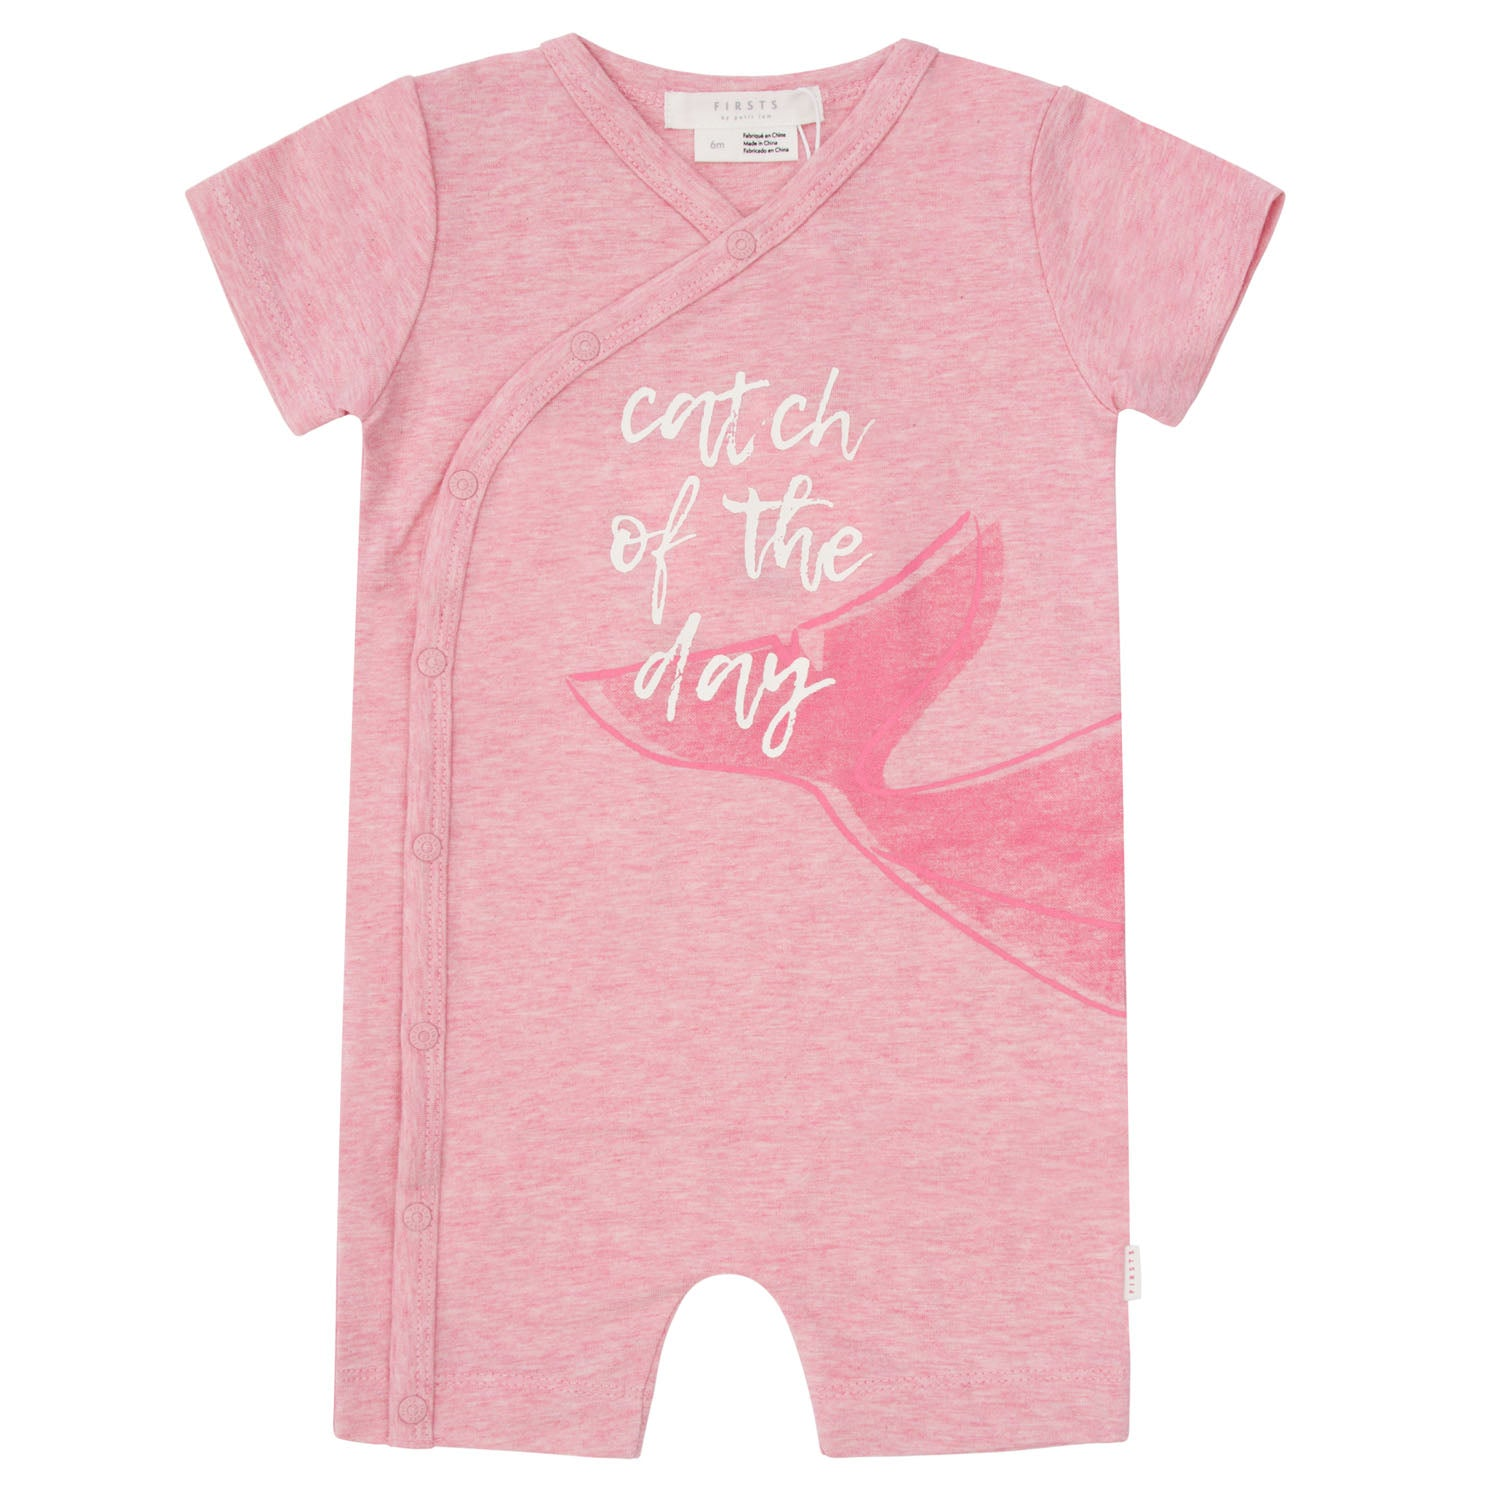 FIRSTS by Petit Lem Organic Baby Short Sleeve Playsuit Catch of the Day Pink